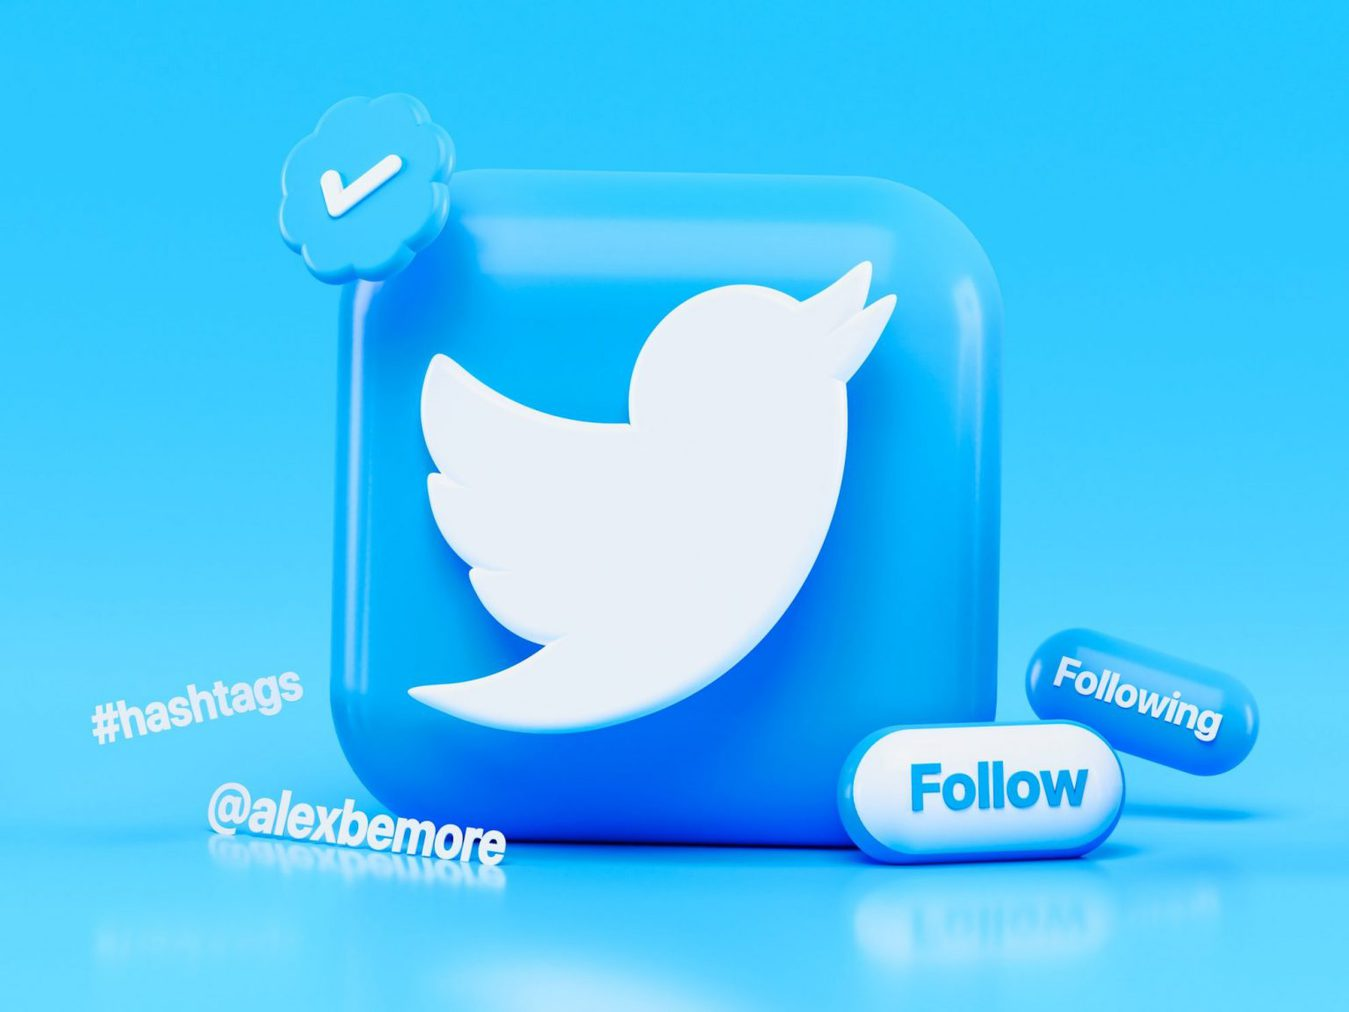 Icona Twitter in 3D